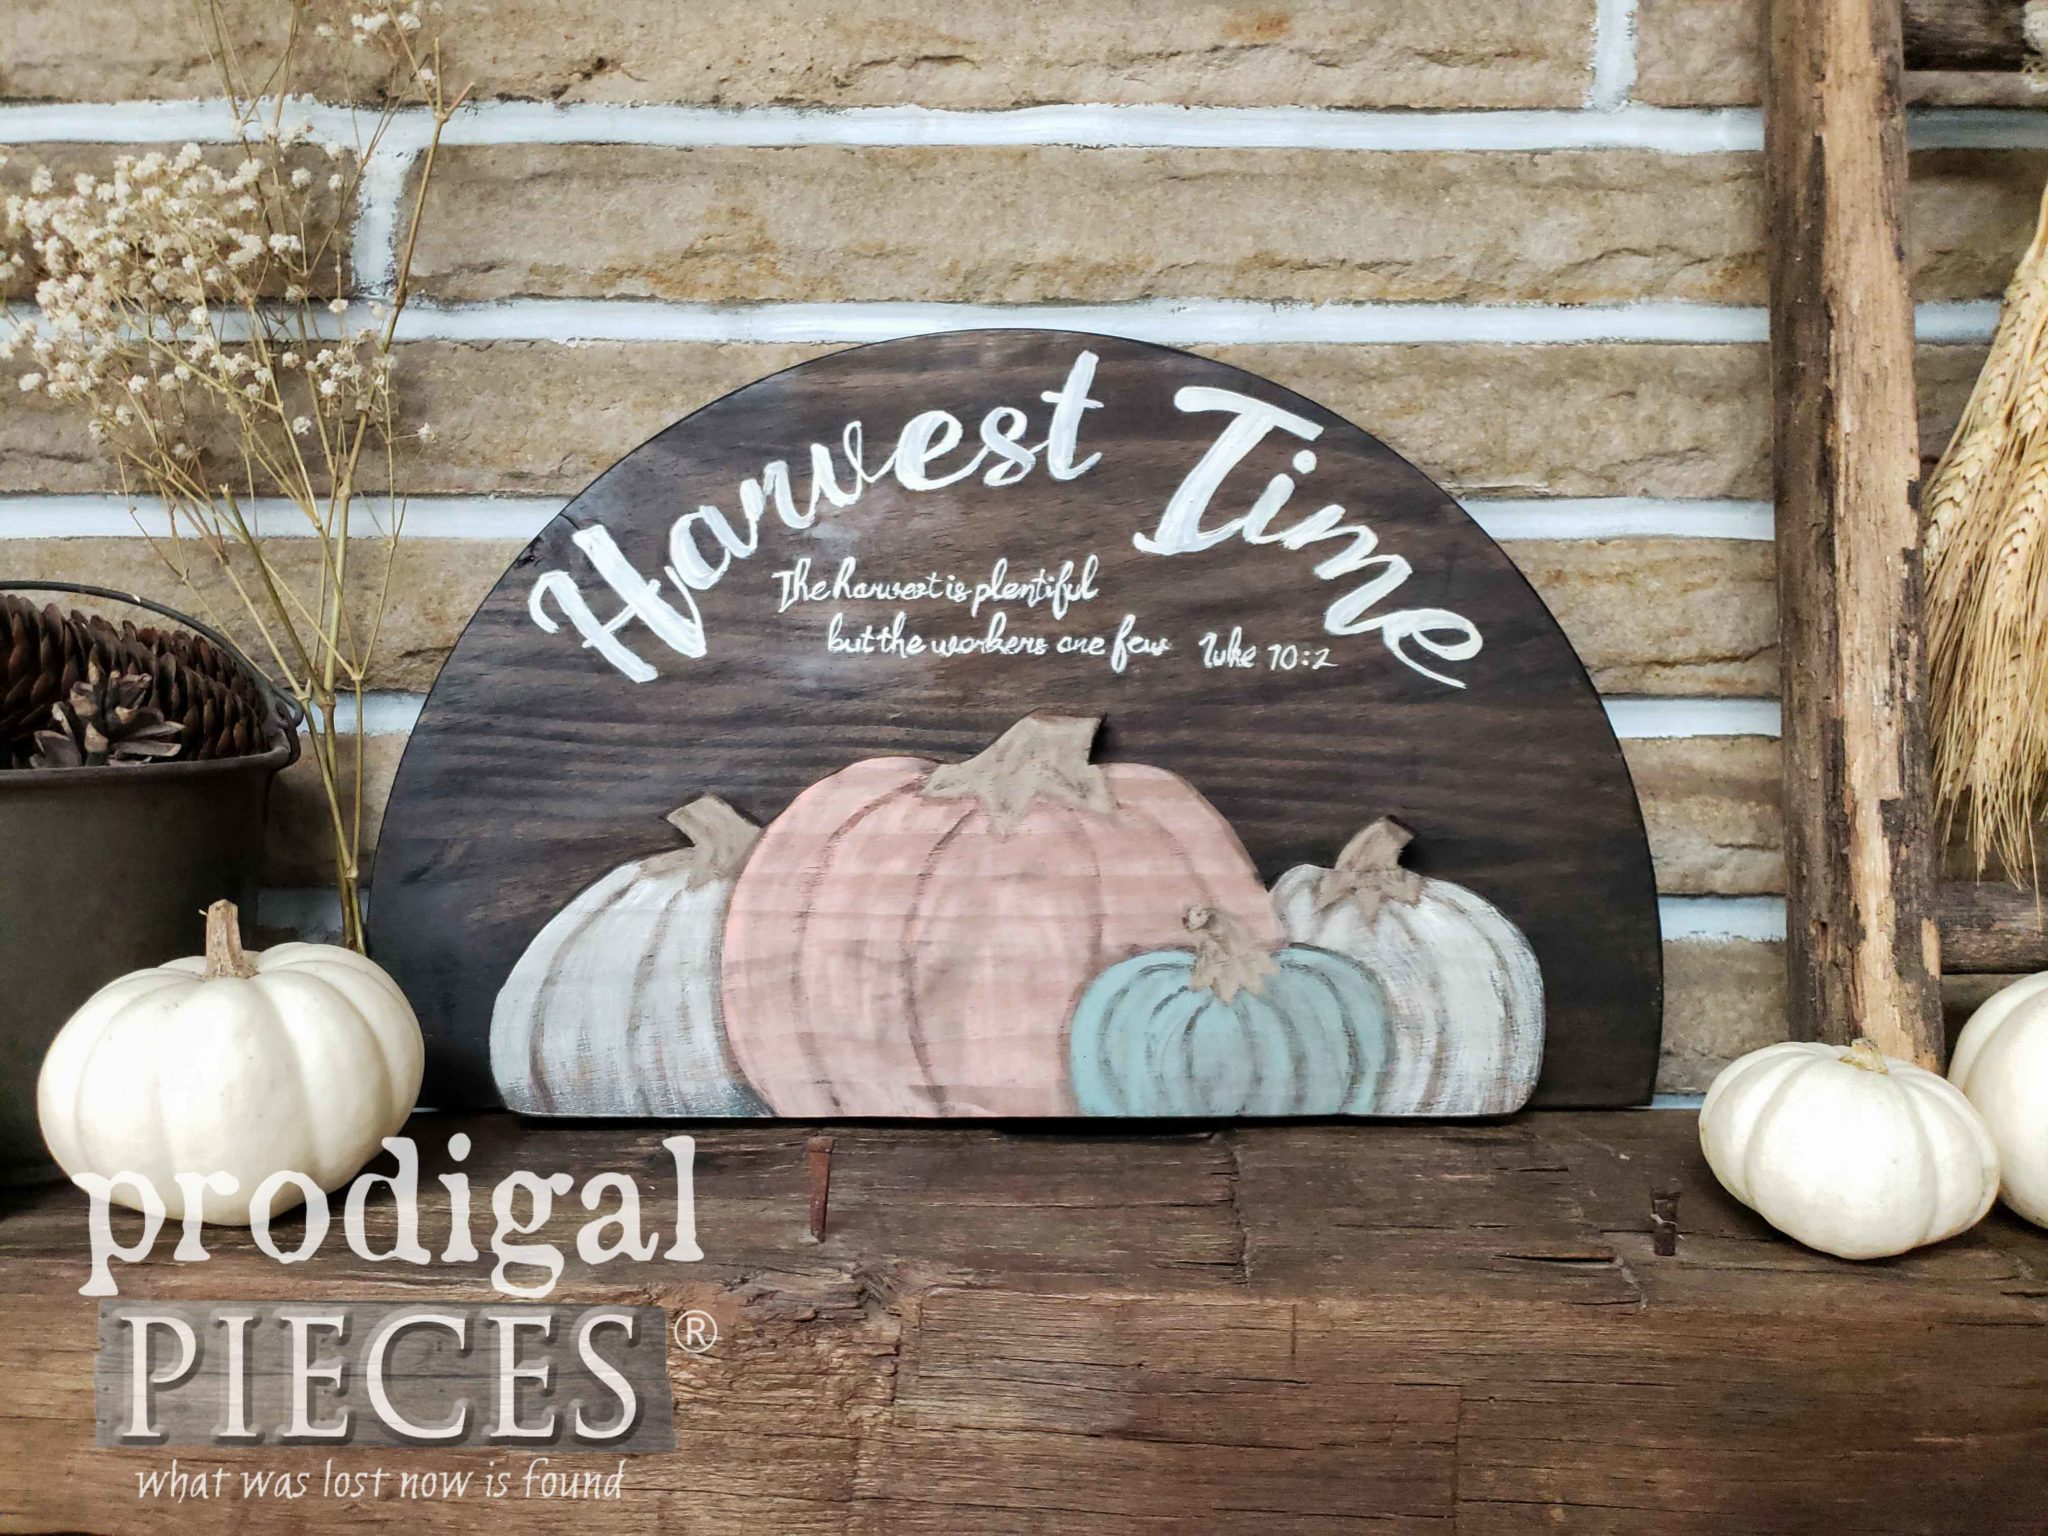 """The Harvest is Plentiful, but the Workers are Few"" ~ DIY Harvest Time Sign by Larissa of Prodigal Pieces 